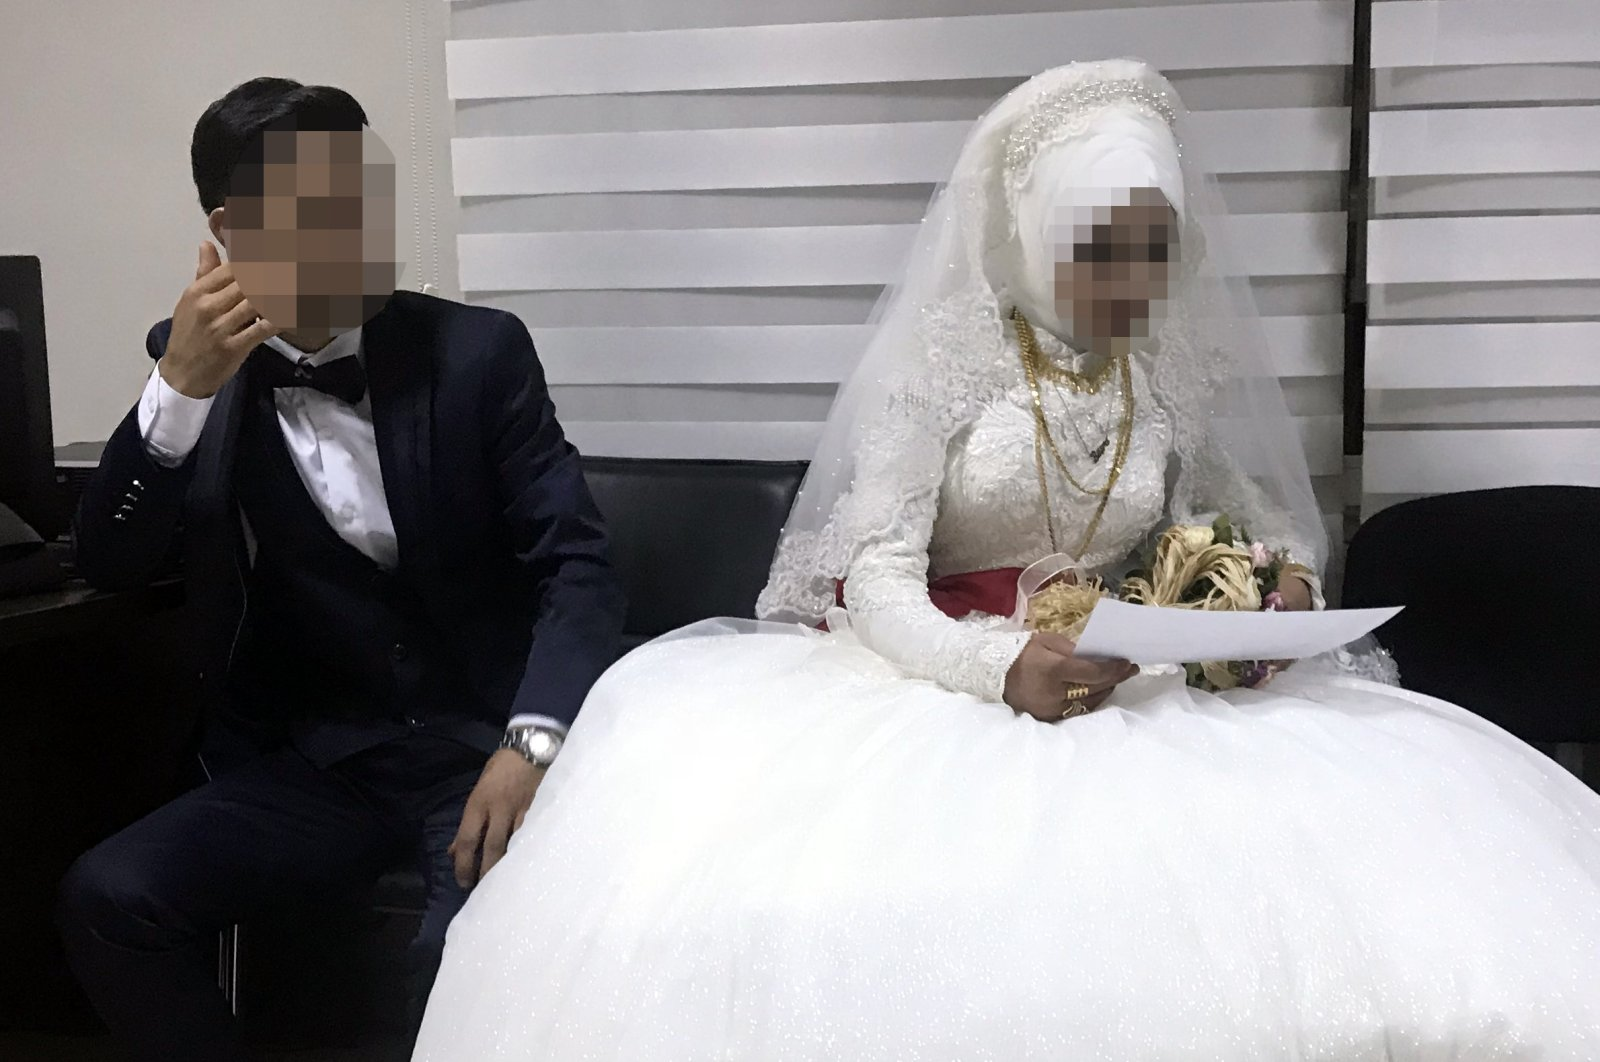 UN report sheds light on child marriage issue plaguing Turkey